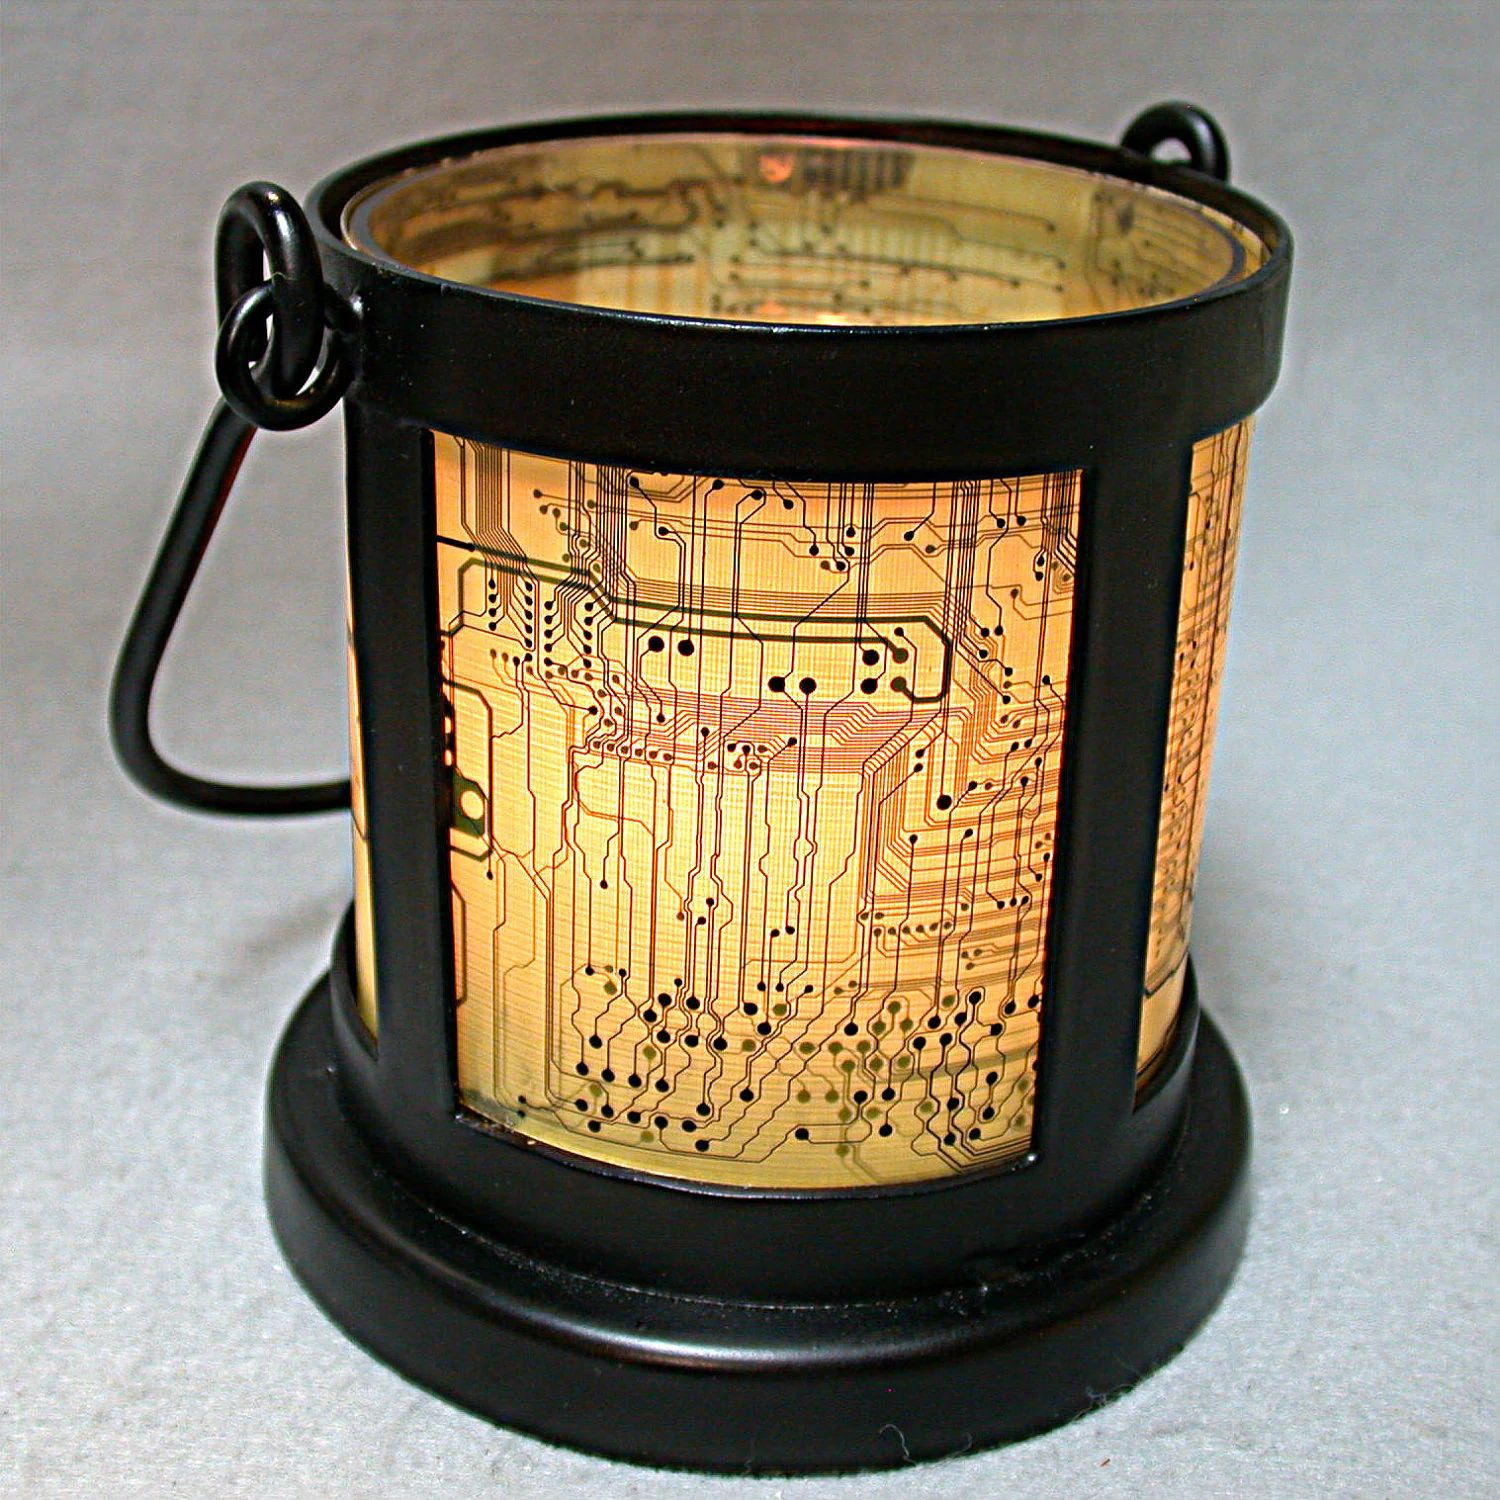 Recycled Circuit Board Geekery Vintage Lantern By Auto Electrical Geek Bookmarks Pkg 2 Debbyaremdesigns Black Wrought Iron Candle